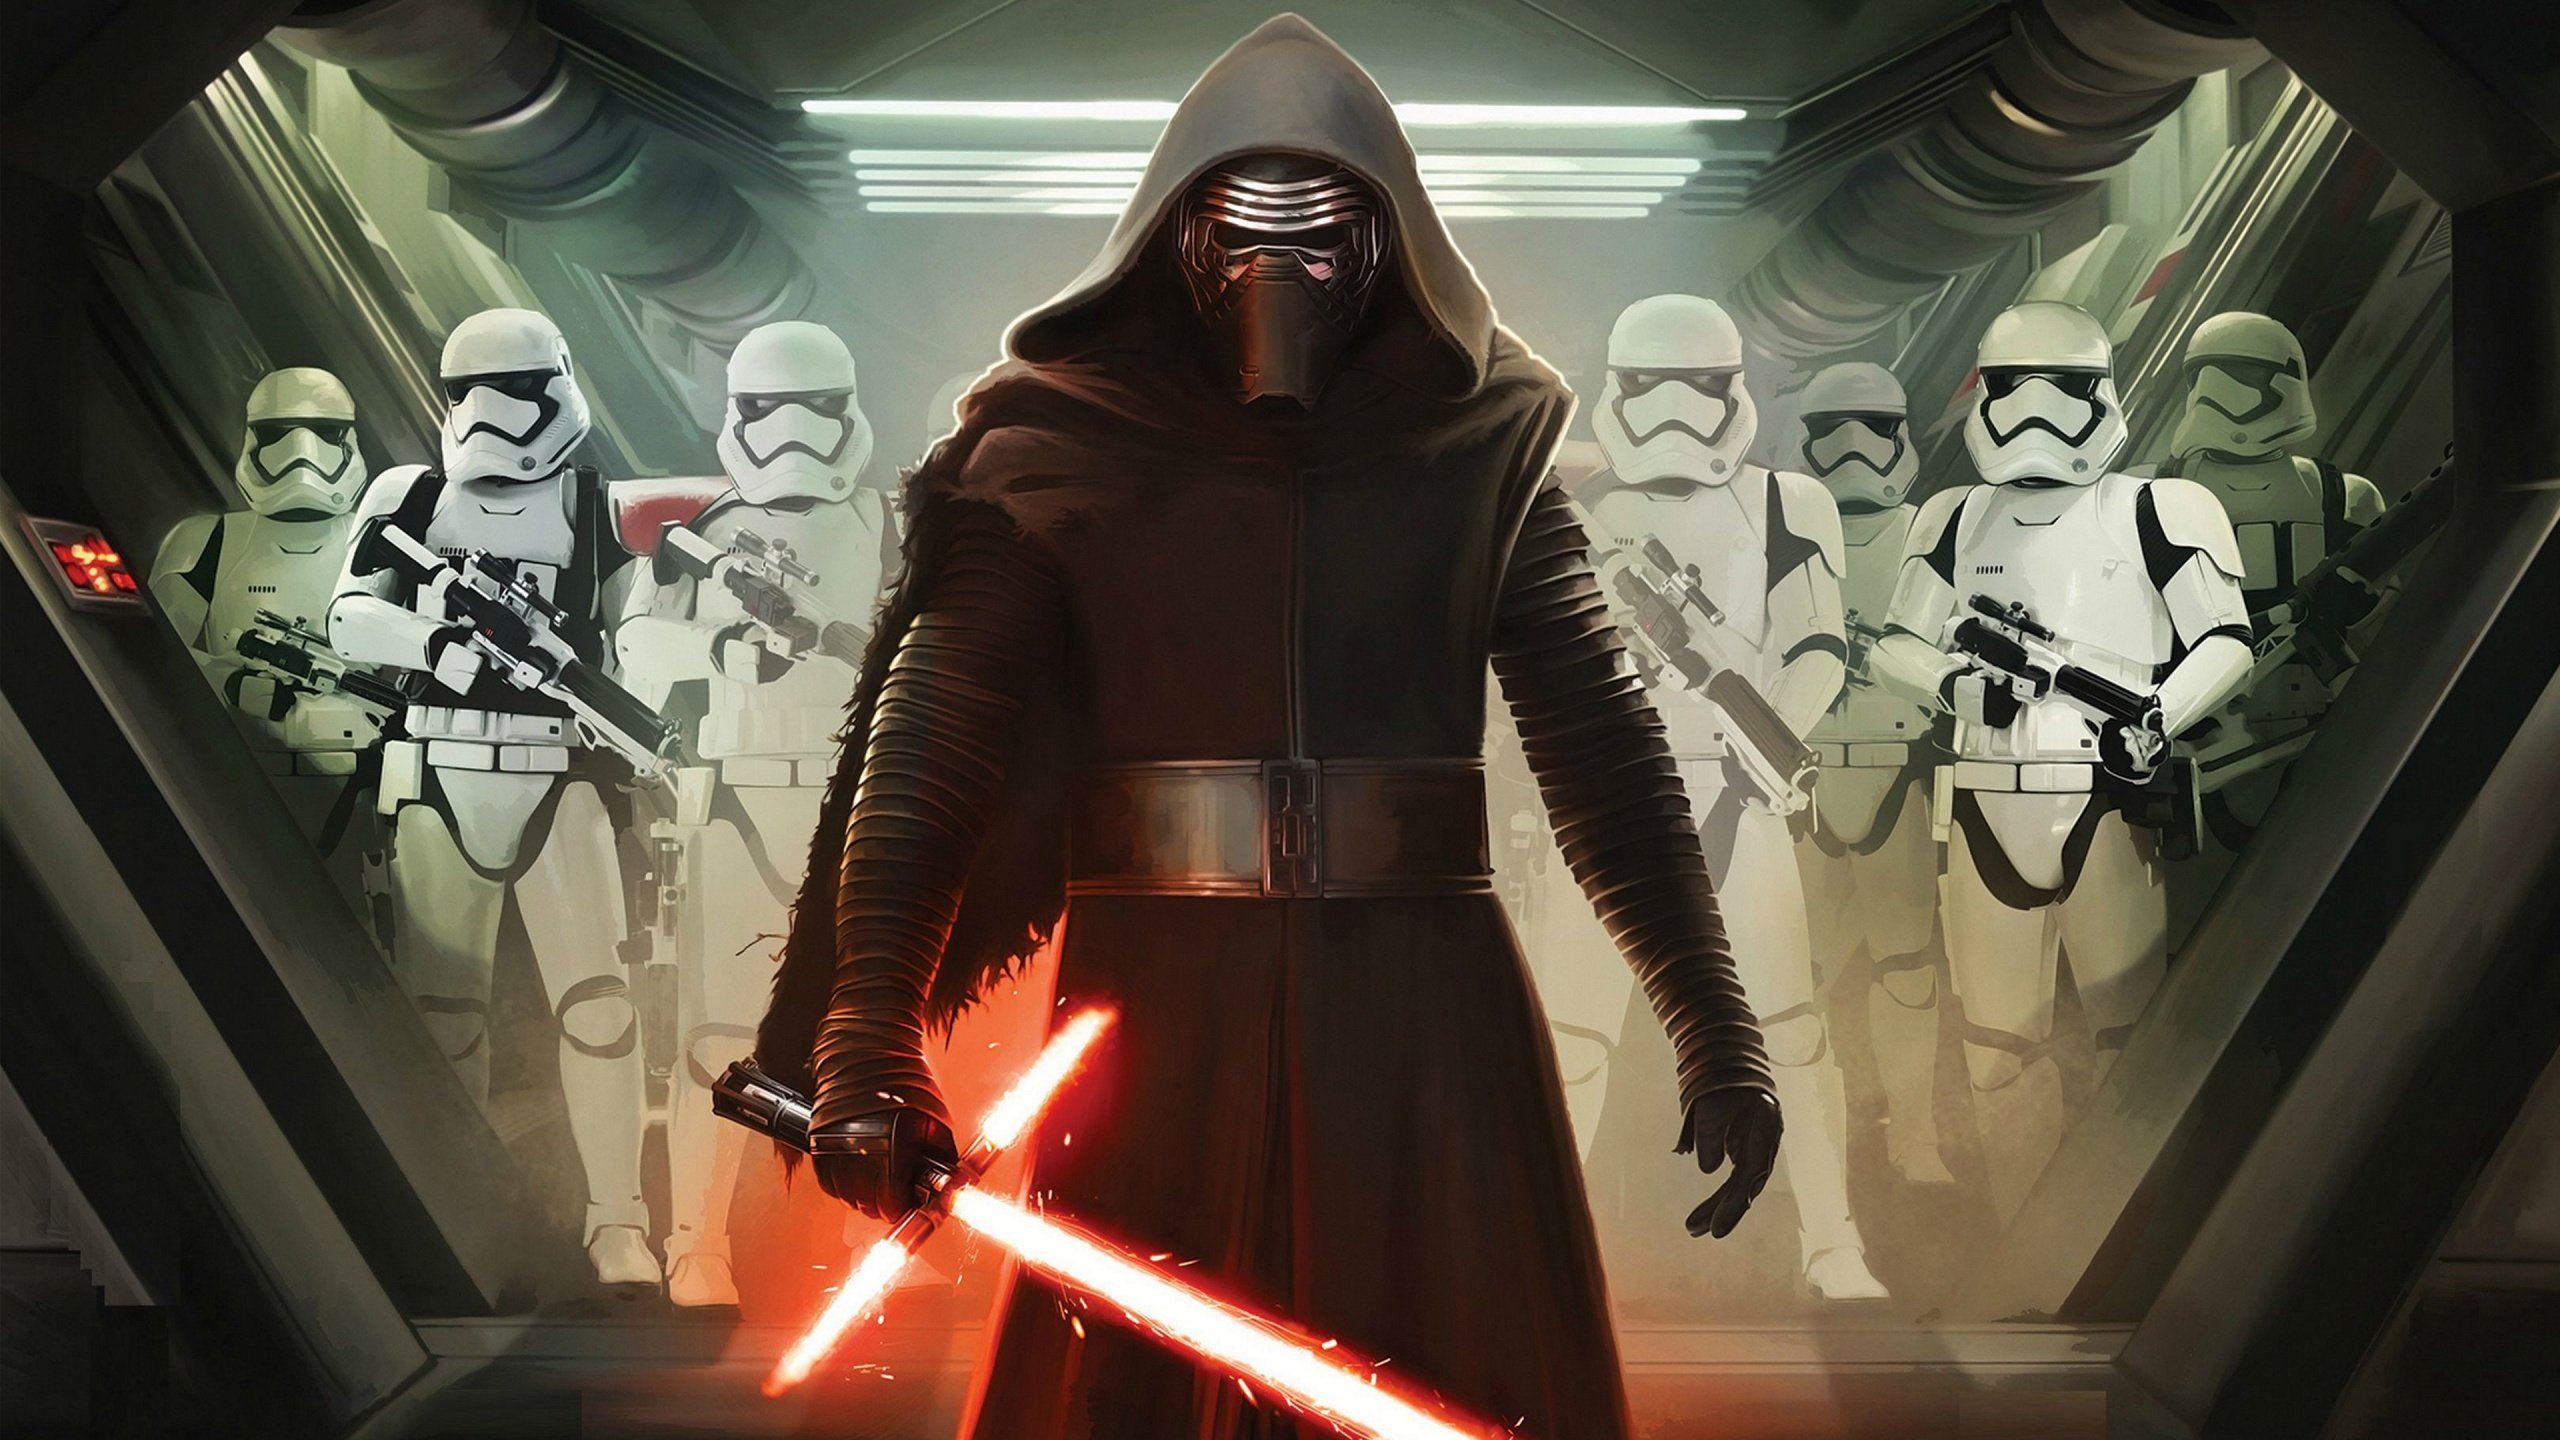 Kylo Ren and First Order Stormtroopers Wallpapers HD Wallpapers 2560x1440